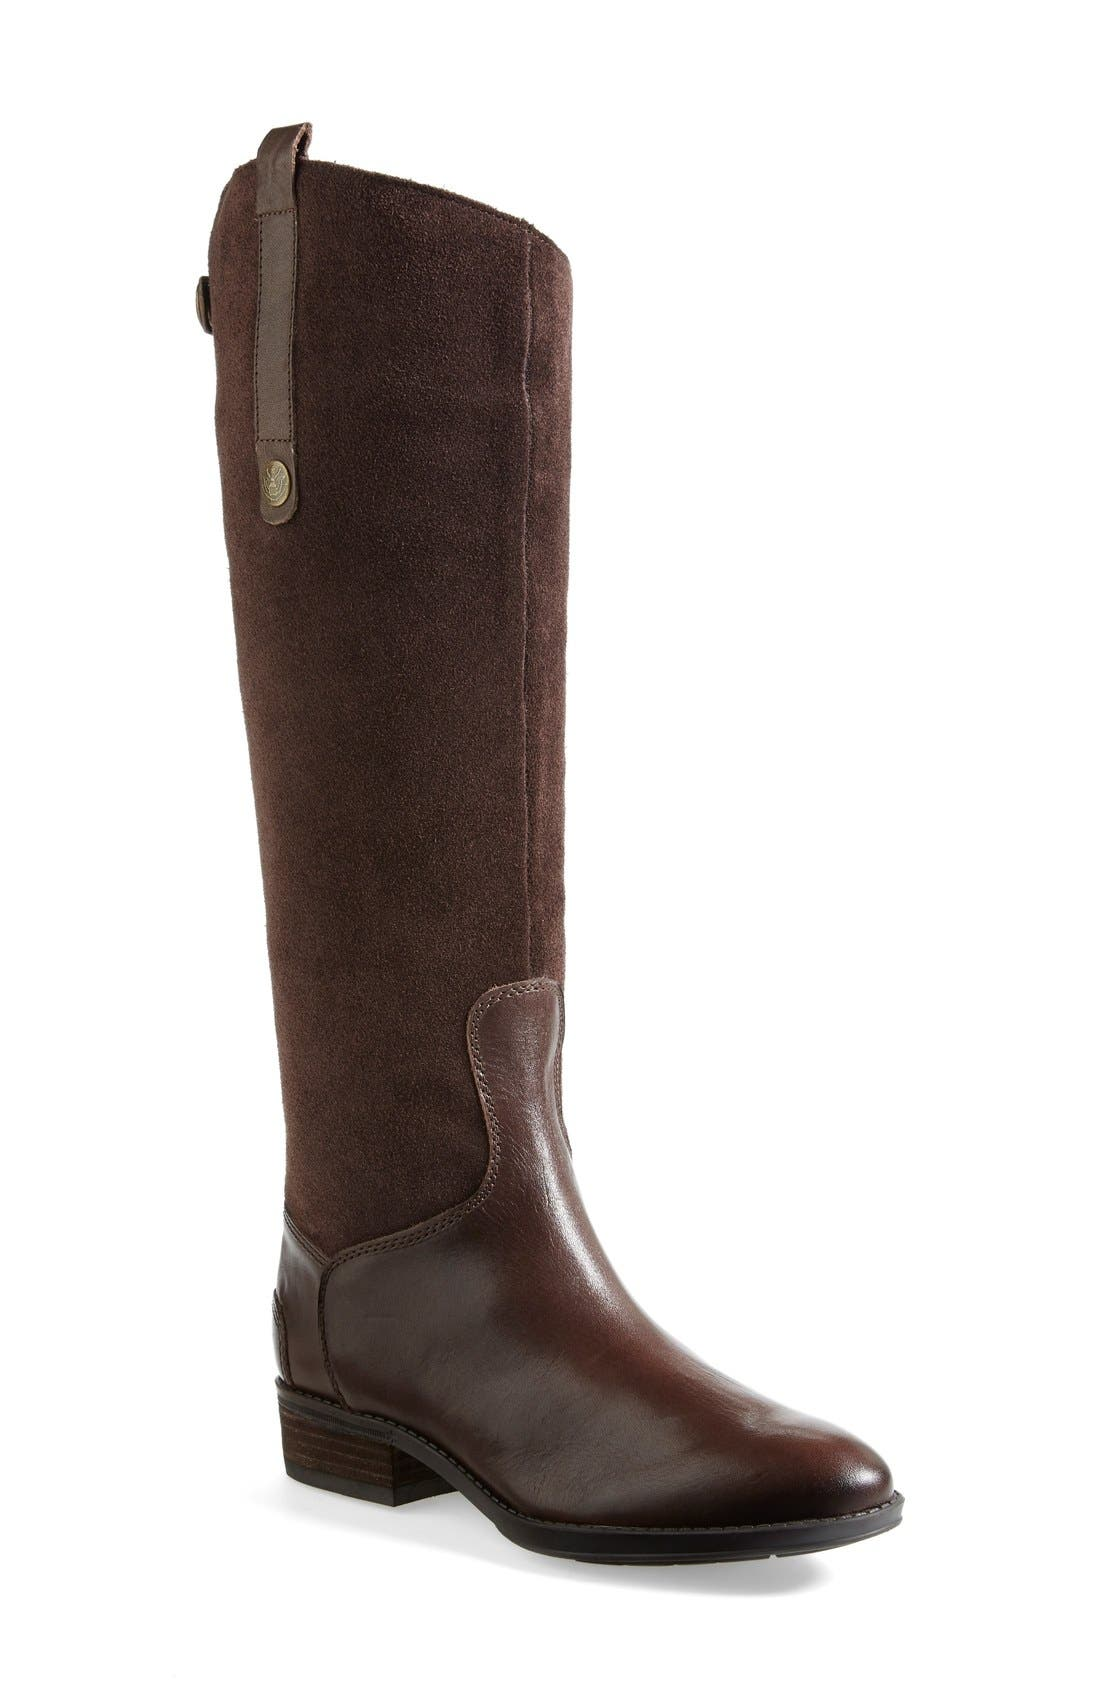 Alternate Image 1 Selected - Sam Edelman 'Pembrooke' Boot (Wide Calf) (Nordstrom Exclusive) (Women)